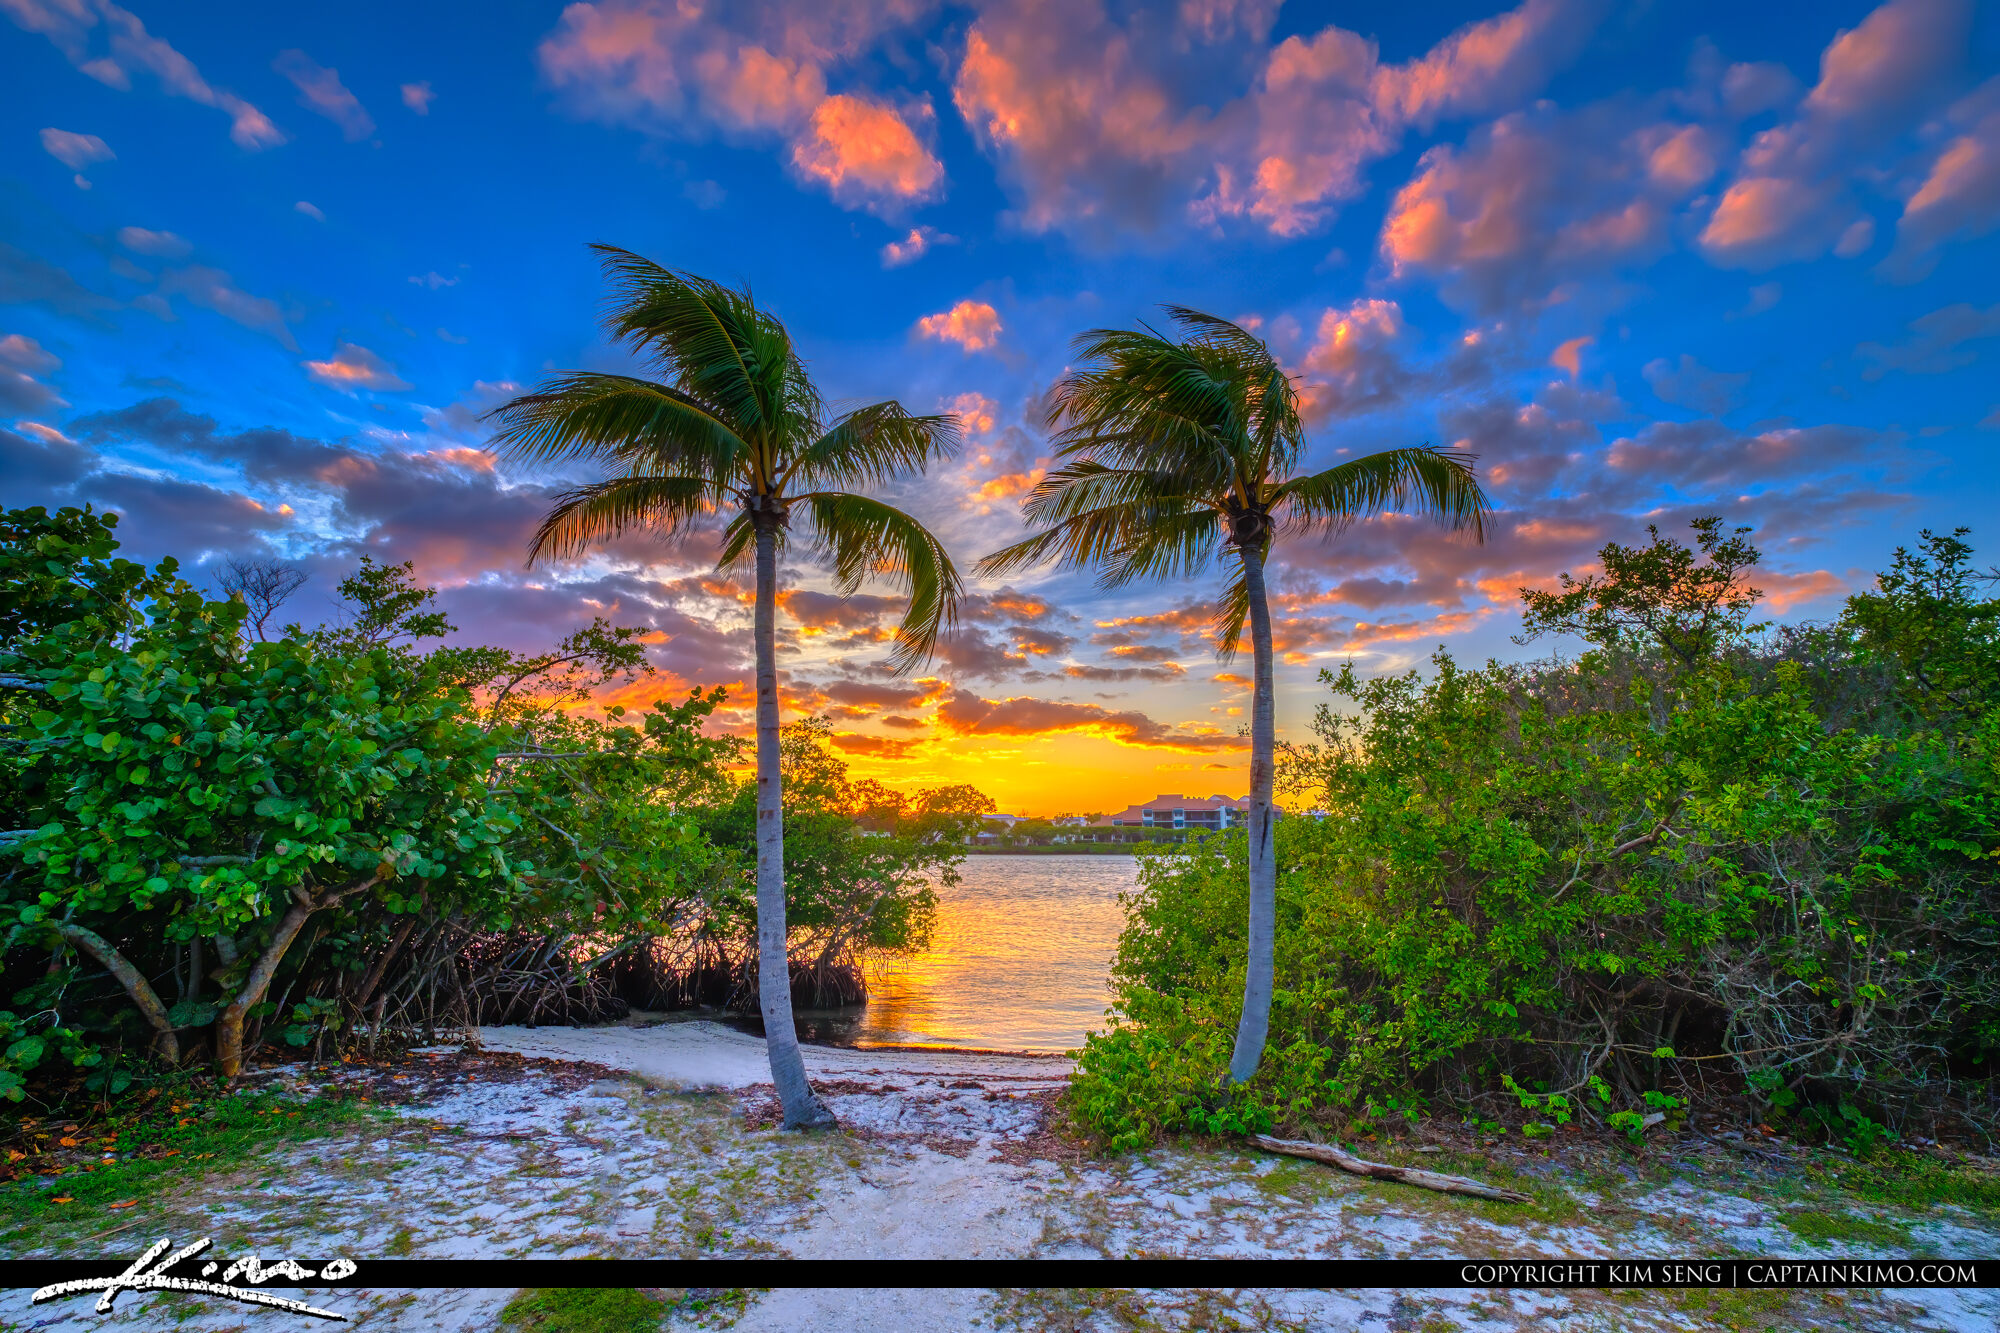 Loxahatchee River Jupiter Island Sunset Coconut Trees